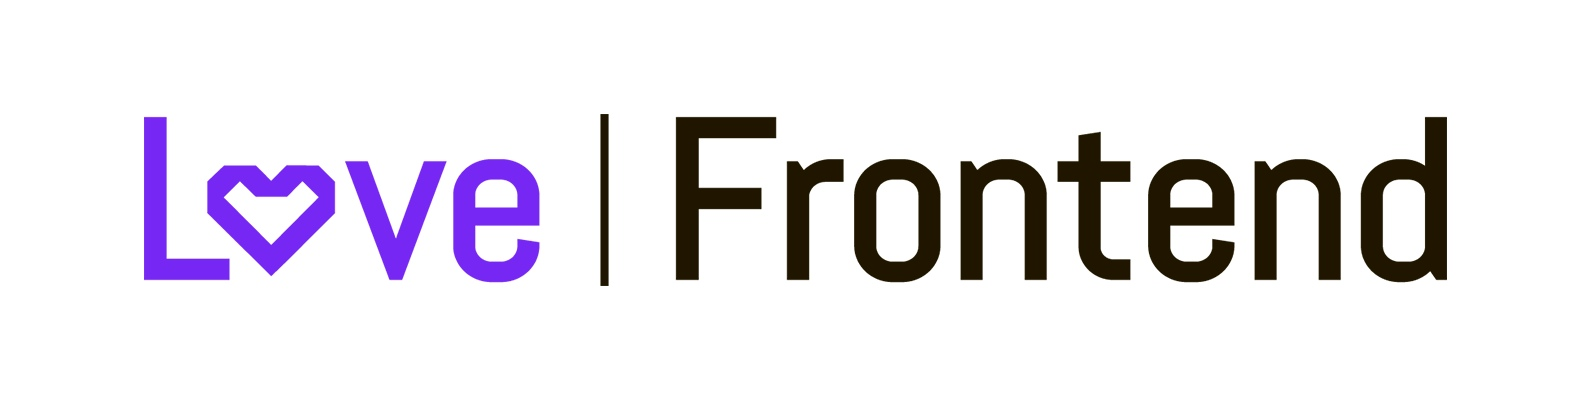 Love Frontend